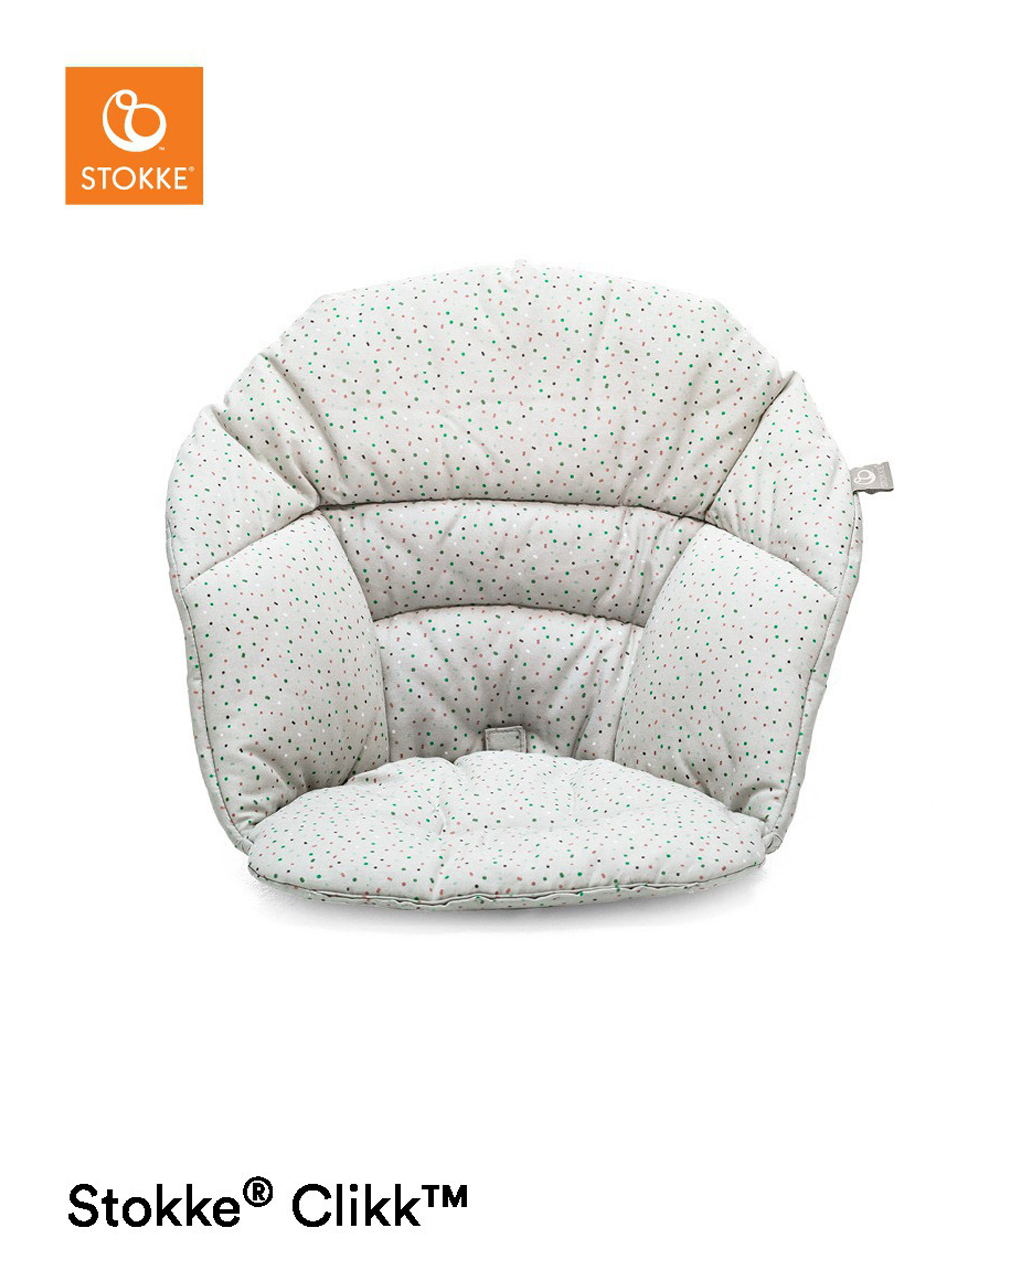 Stokke® clikk™ cushion - grey sprinkles - Stokke